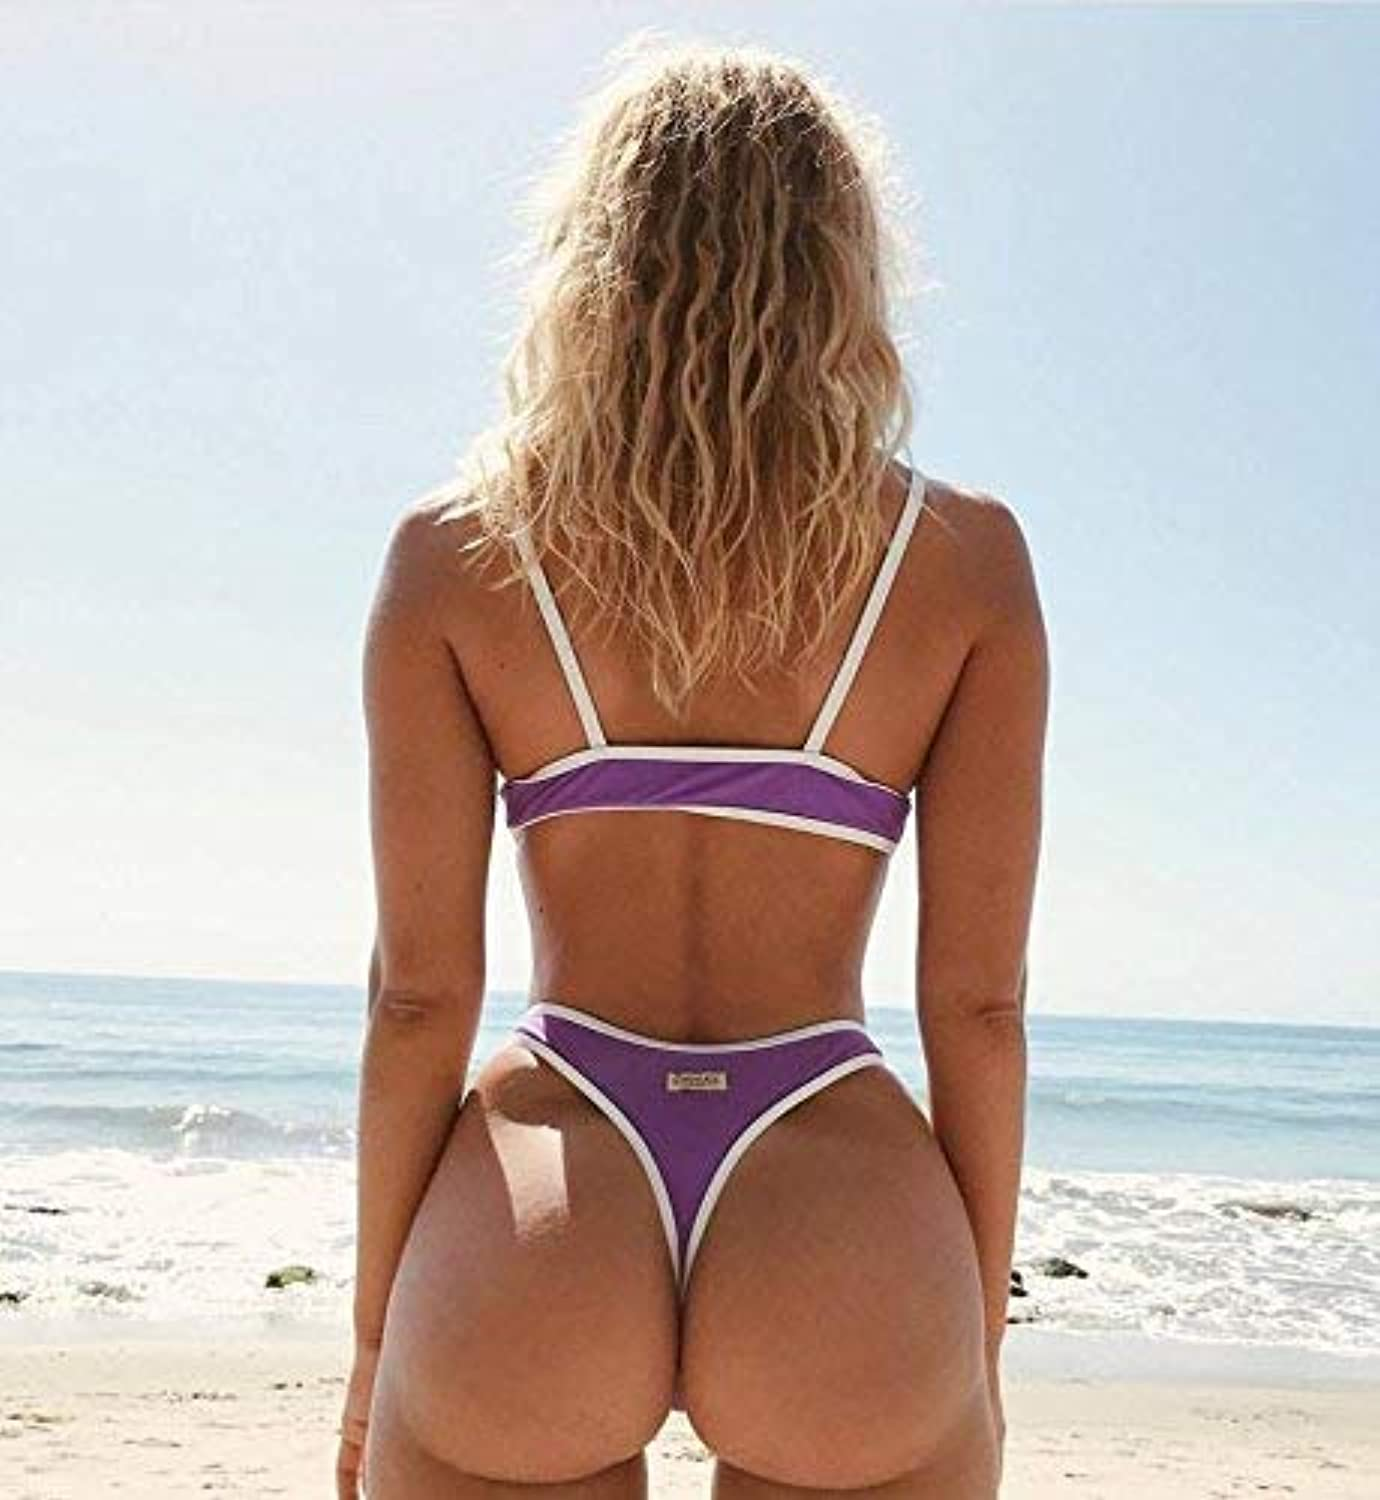 Bebe Rexha Celebrates Big Fat Ass In Sexy, Confident New Instagram Picture